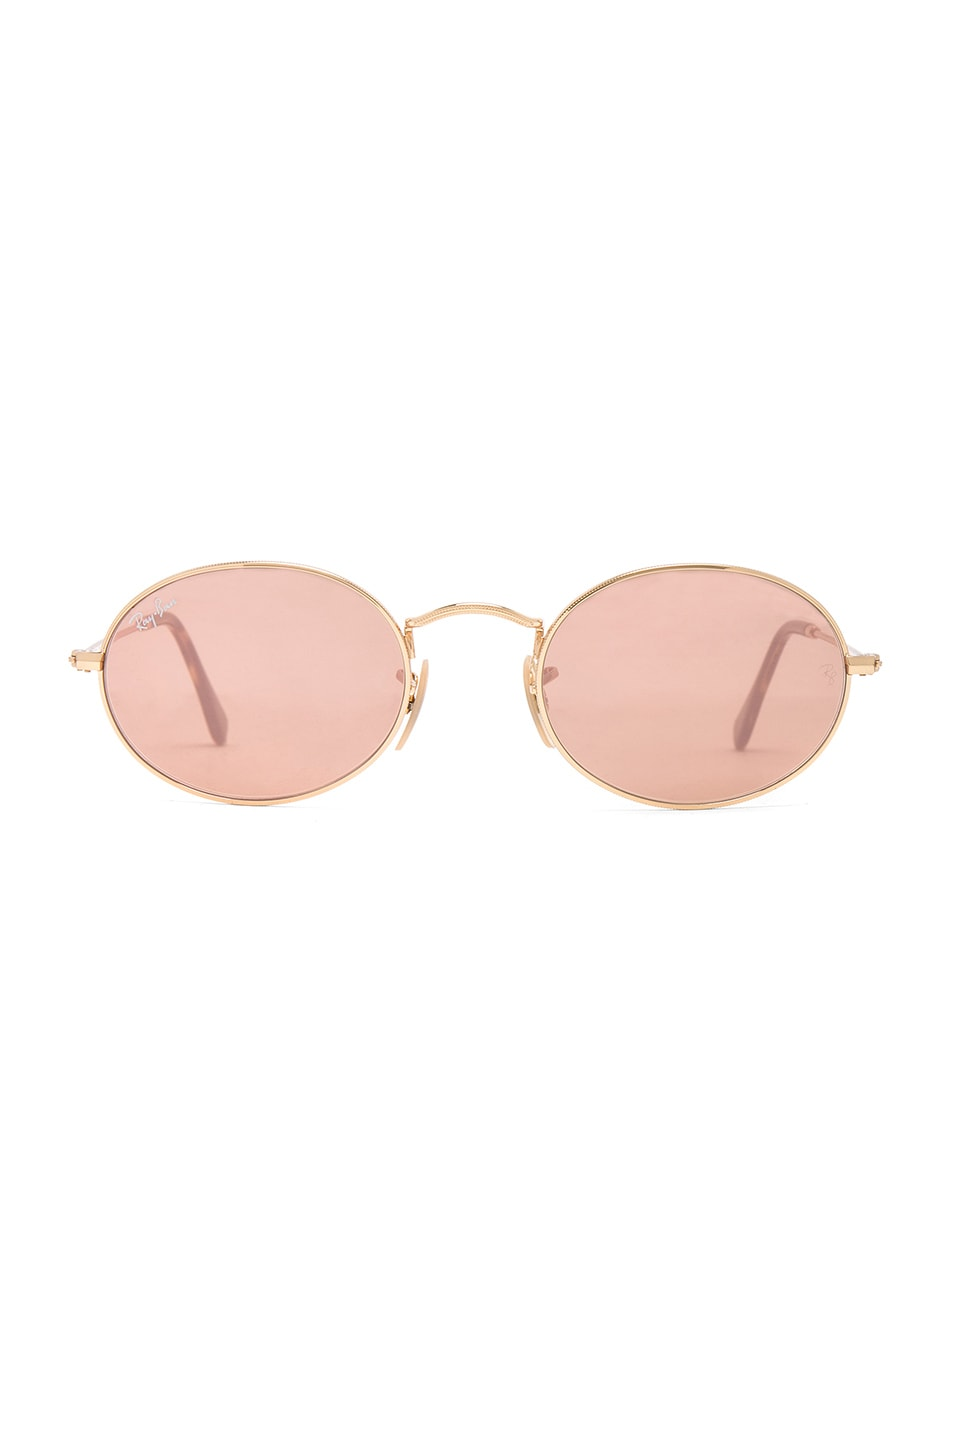 f47257039b3 Image 1 of Ray-Ban Oval Flat Sunglasses in Gold   Copper Flash